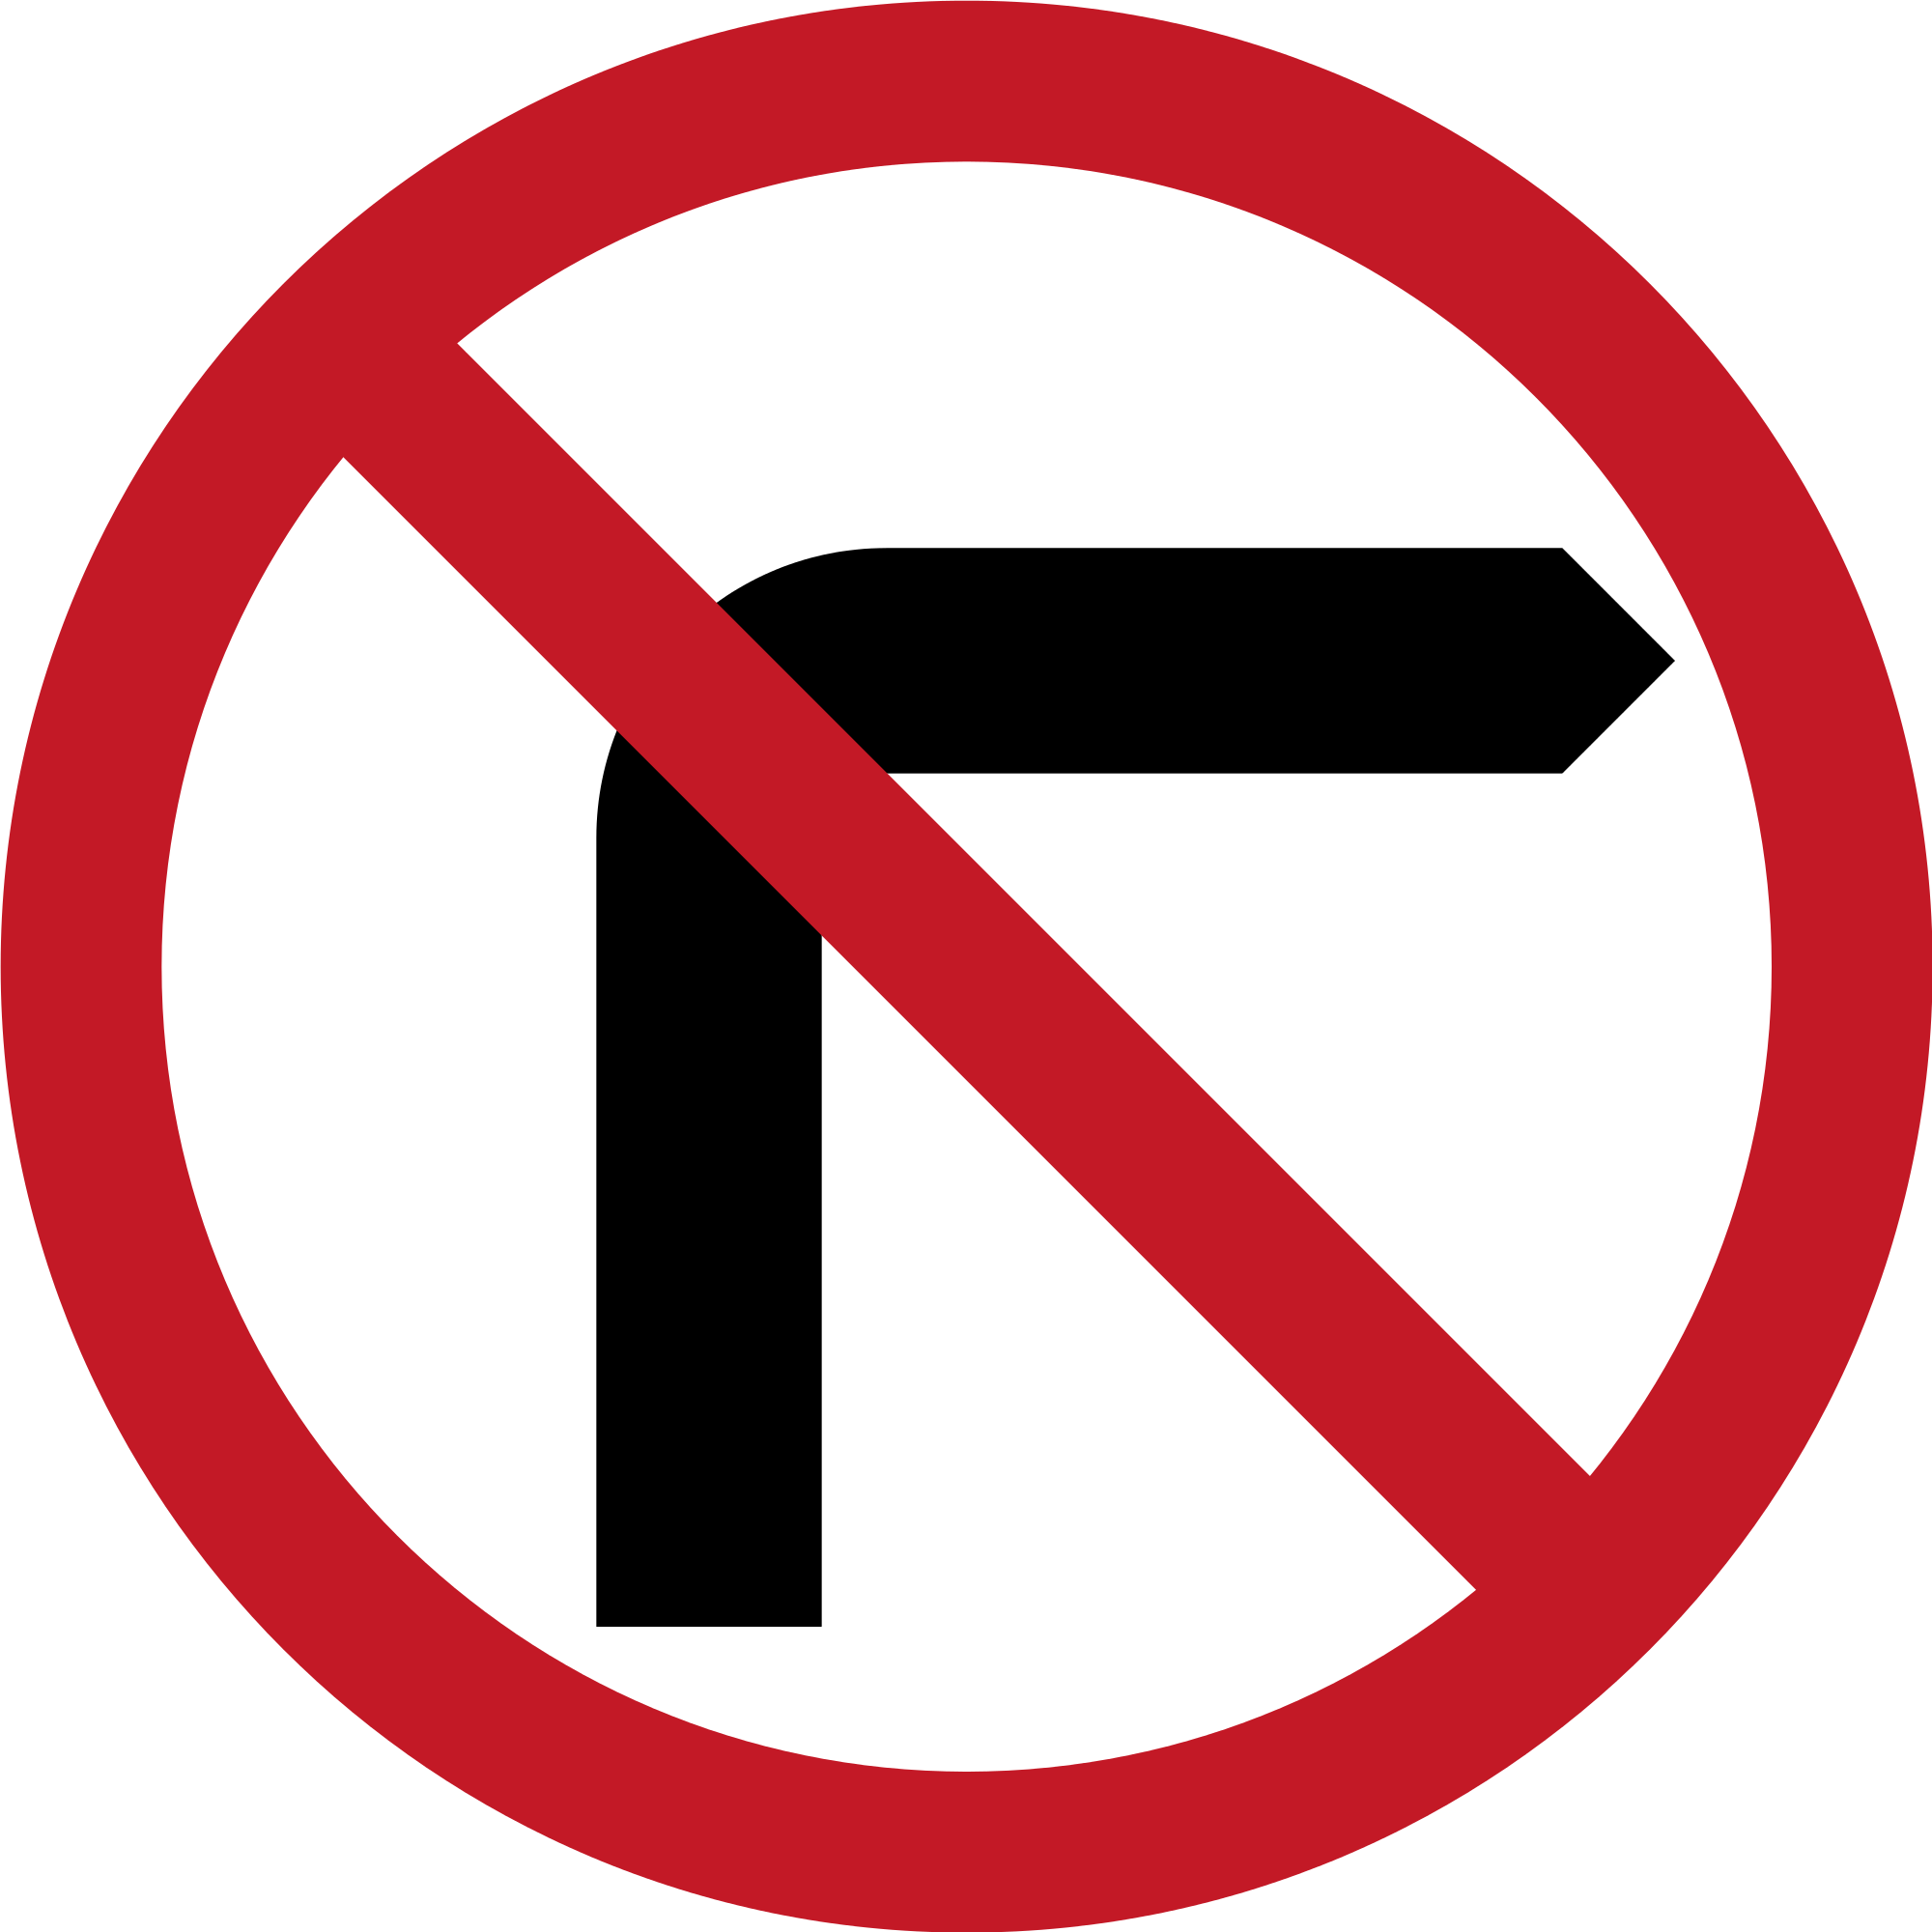 Logo clipart road. File philippines sign r